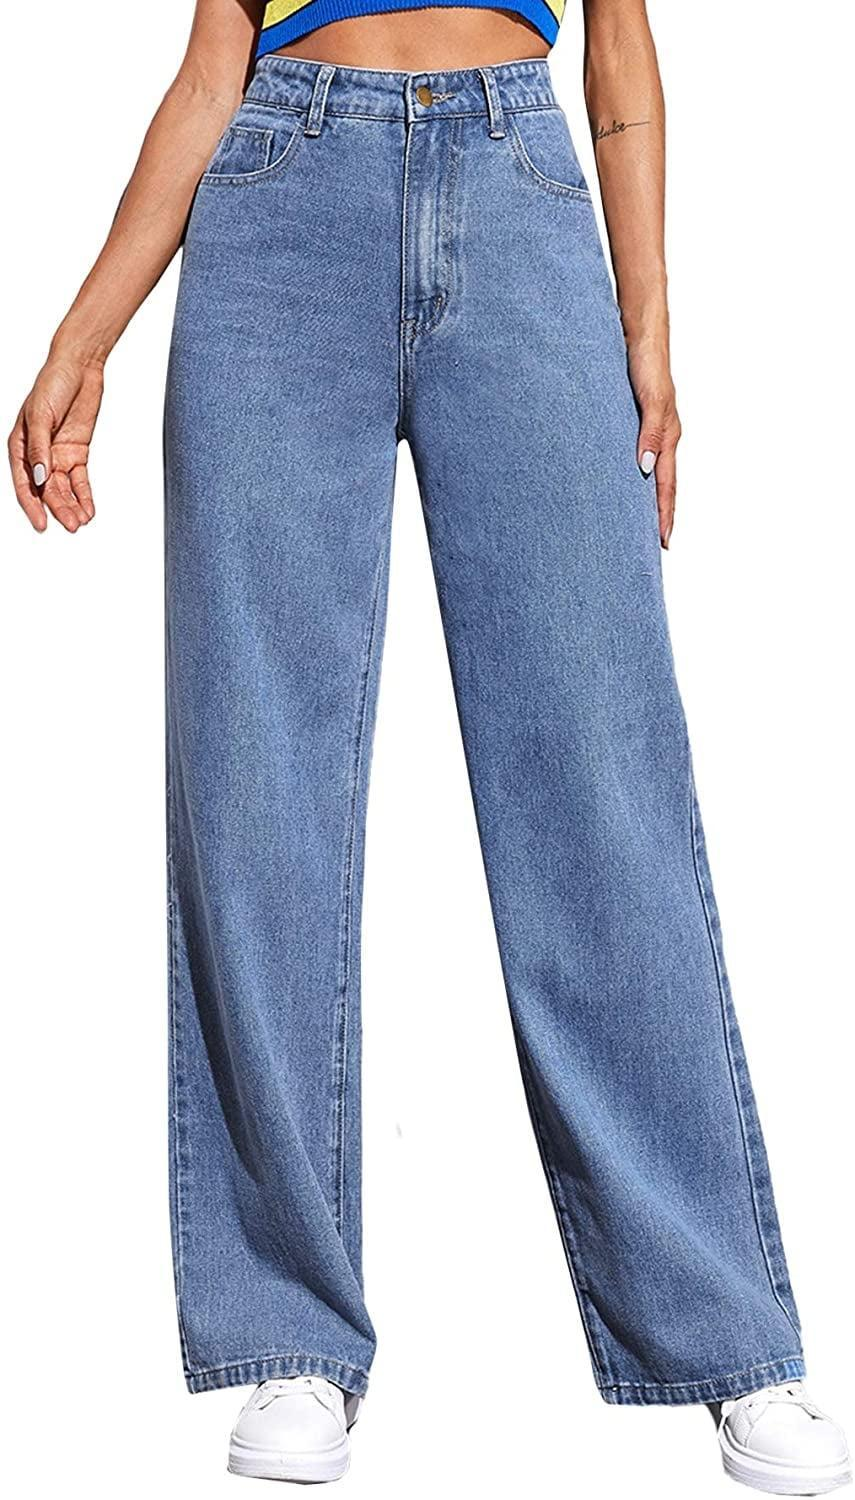 <p>These <span>Soly Hux High-Waisted Wide Leg Jeans</span> ($29-$52) look roomy and comfortable, making them ideal for year-round wear.</p>